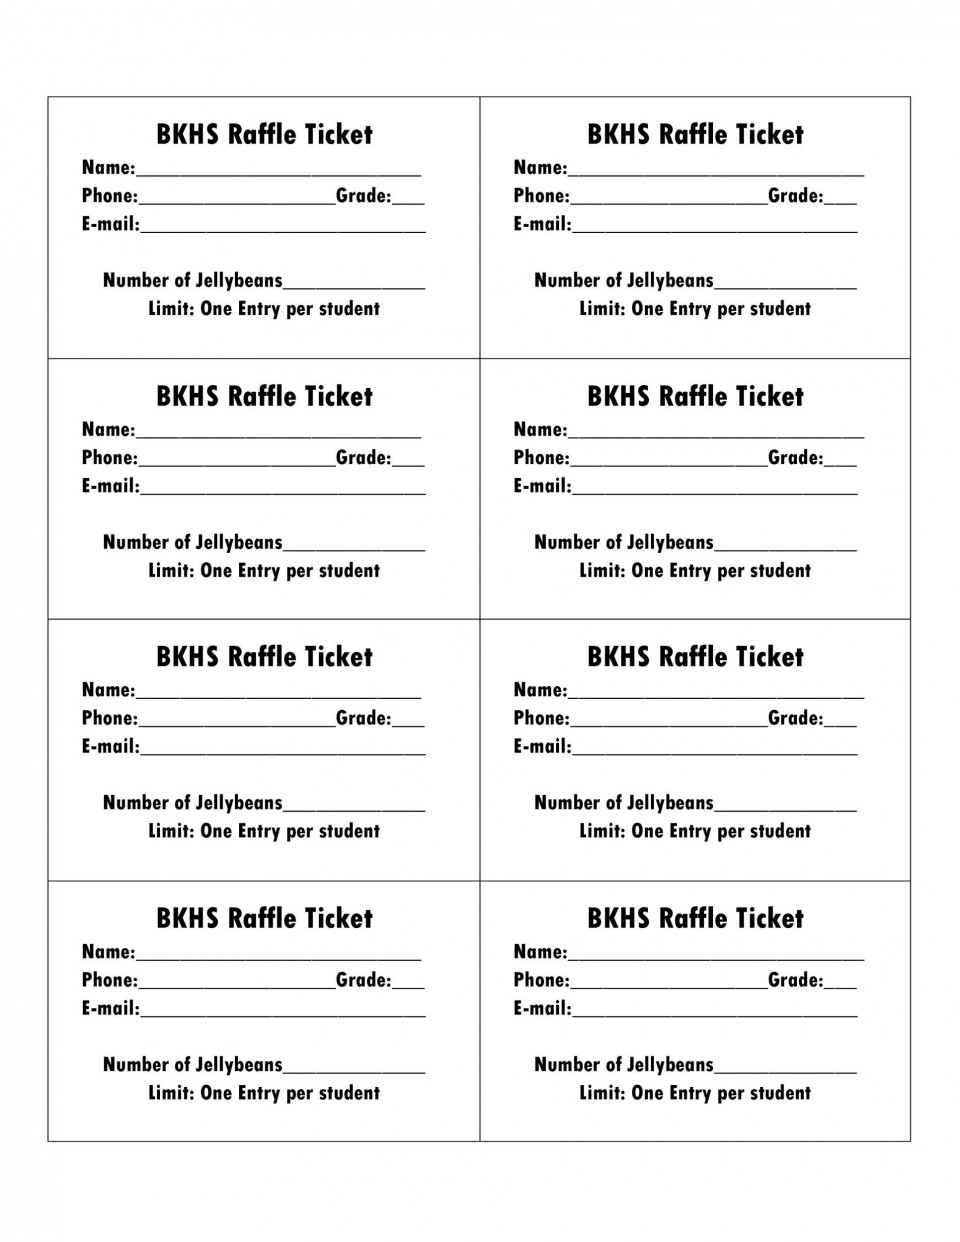 006 Amazing Microsoft Word Raffle Ticket Template Highest Clarity  2007 2010 8 Per Page960